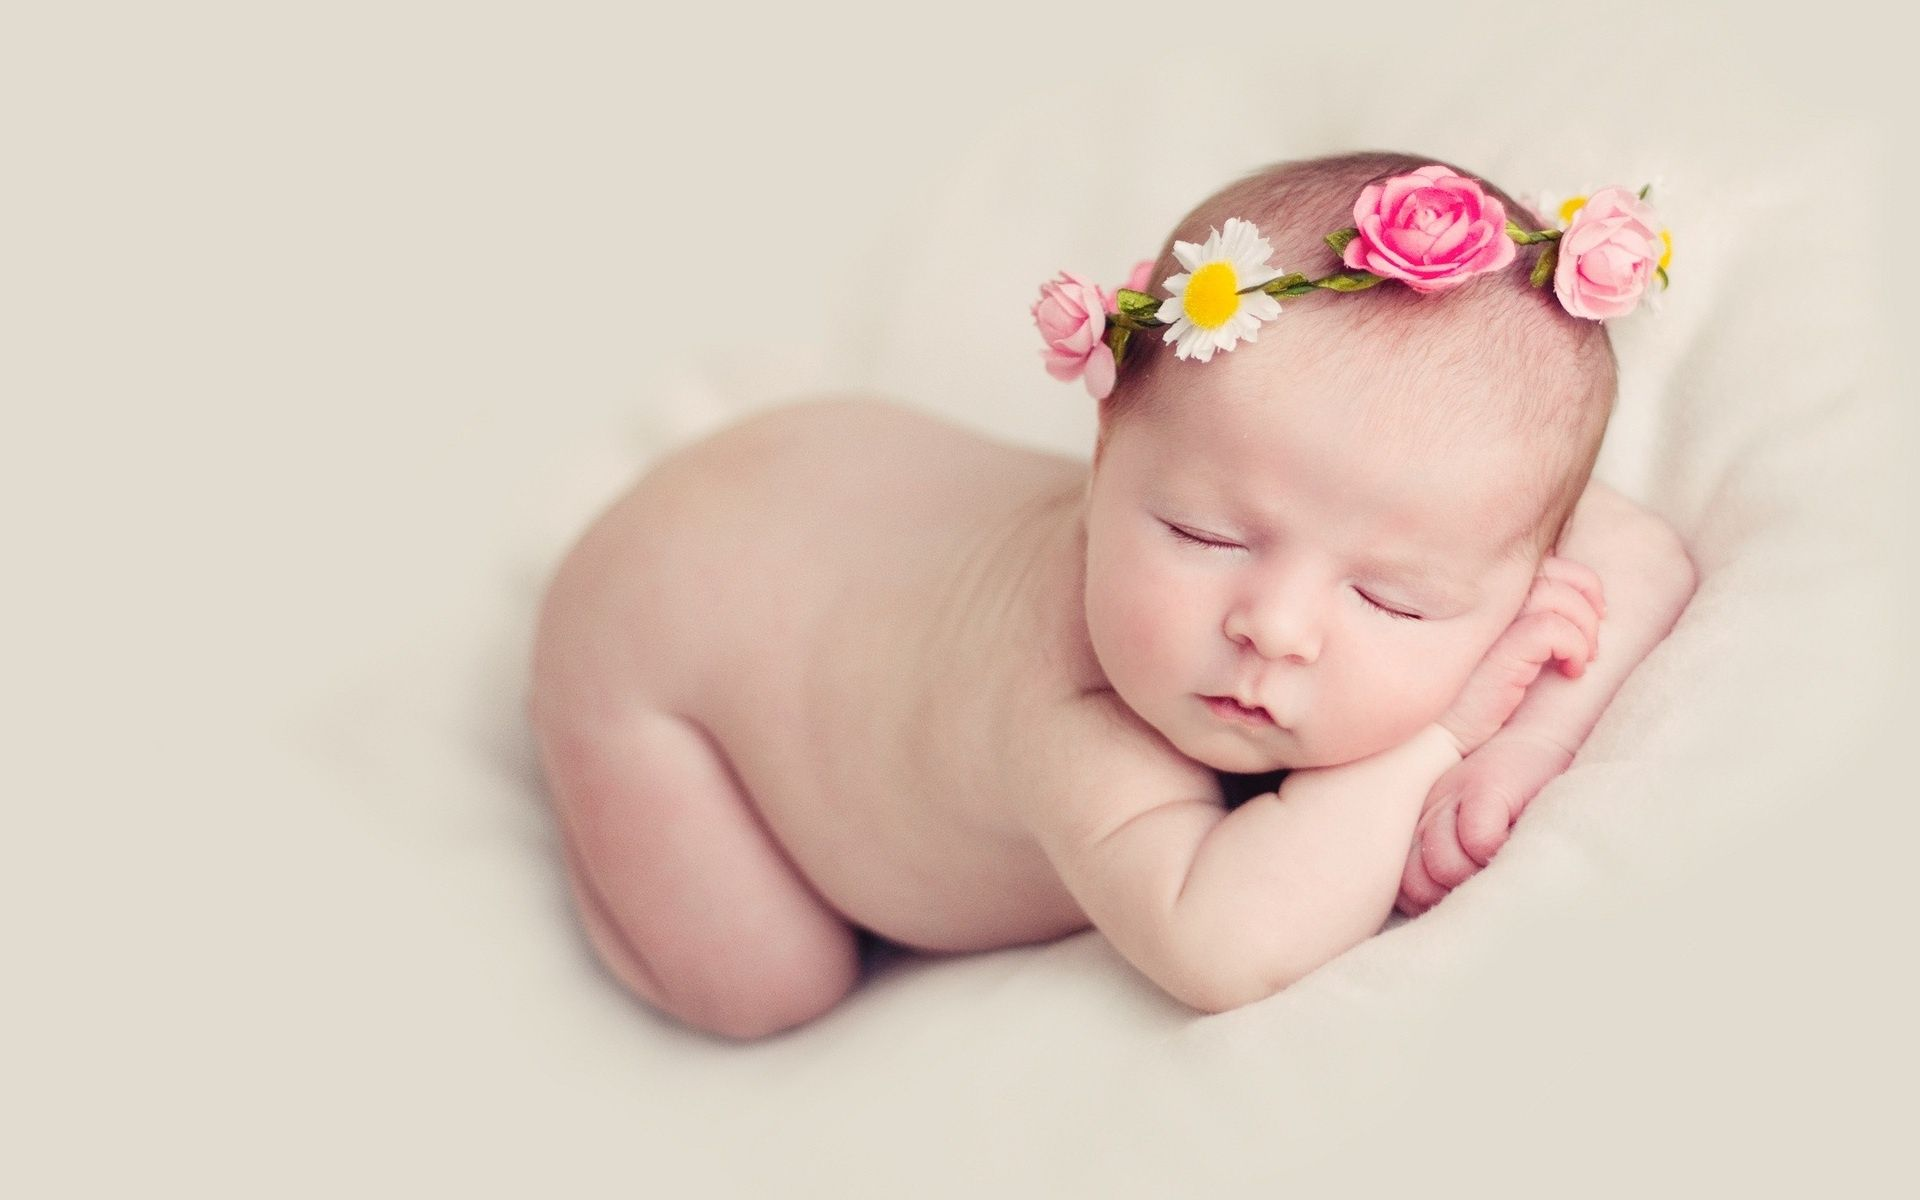 New Born Baby Wallpaper Of Cute Baby Smile Hd Wallpaper All